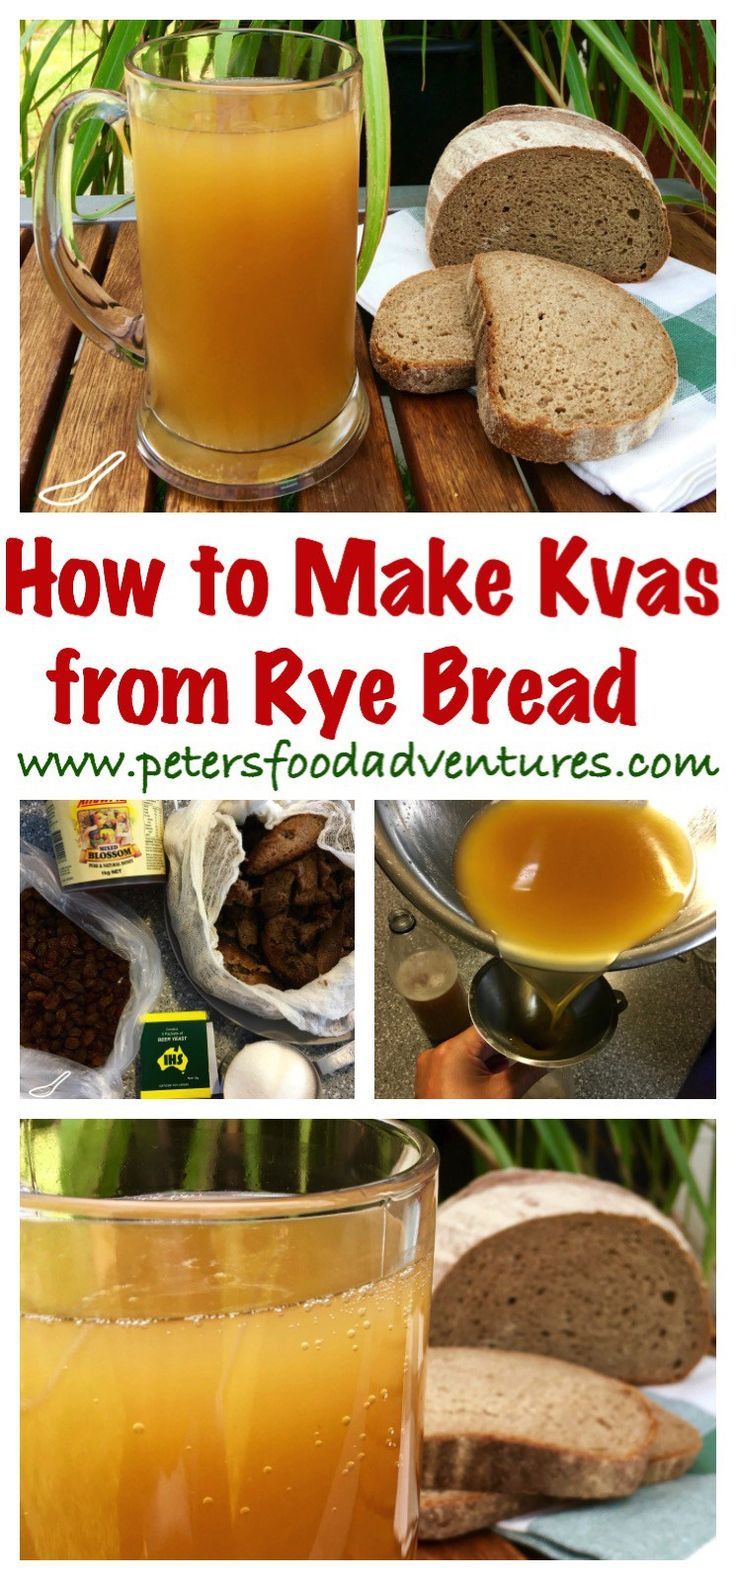 A refreshing Russian summer drink, naturally fermented, chemical free and delicious! Not beer, but delicious Kvas Rye Bread Drink (Квас)